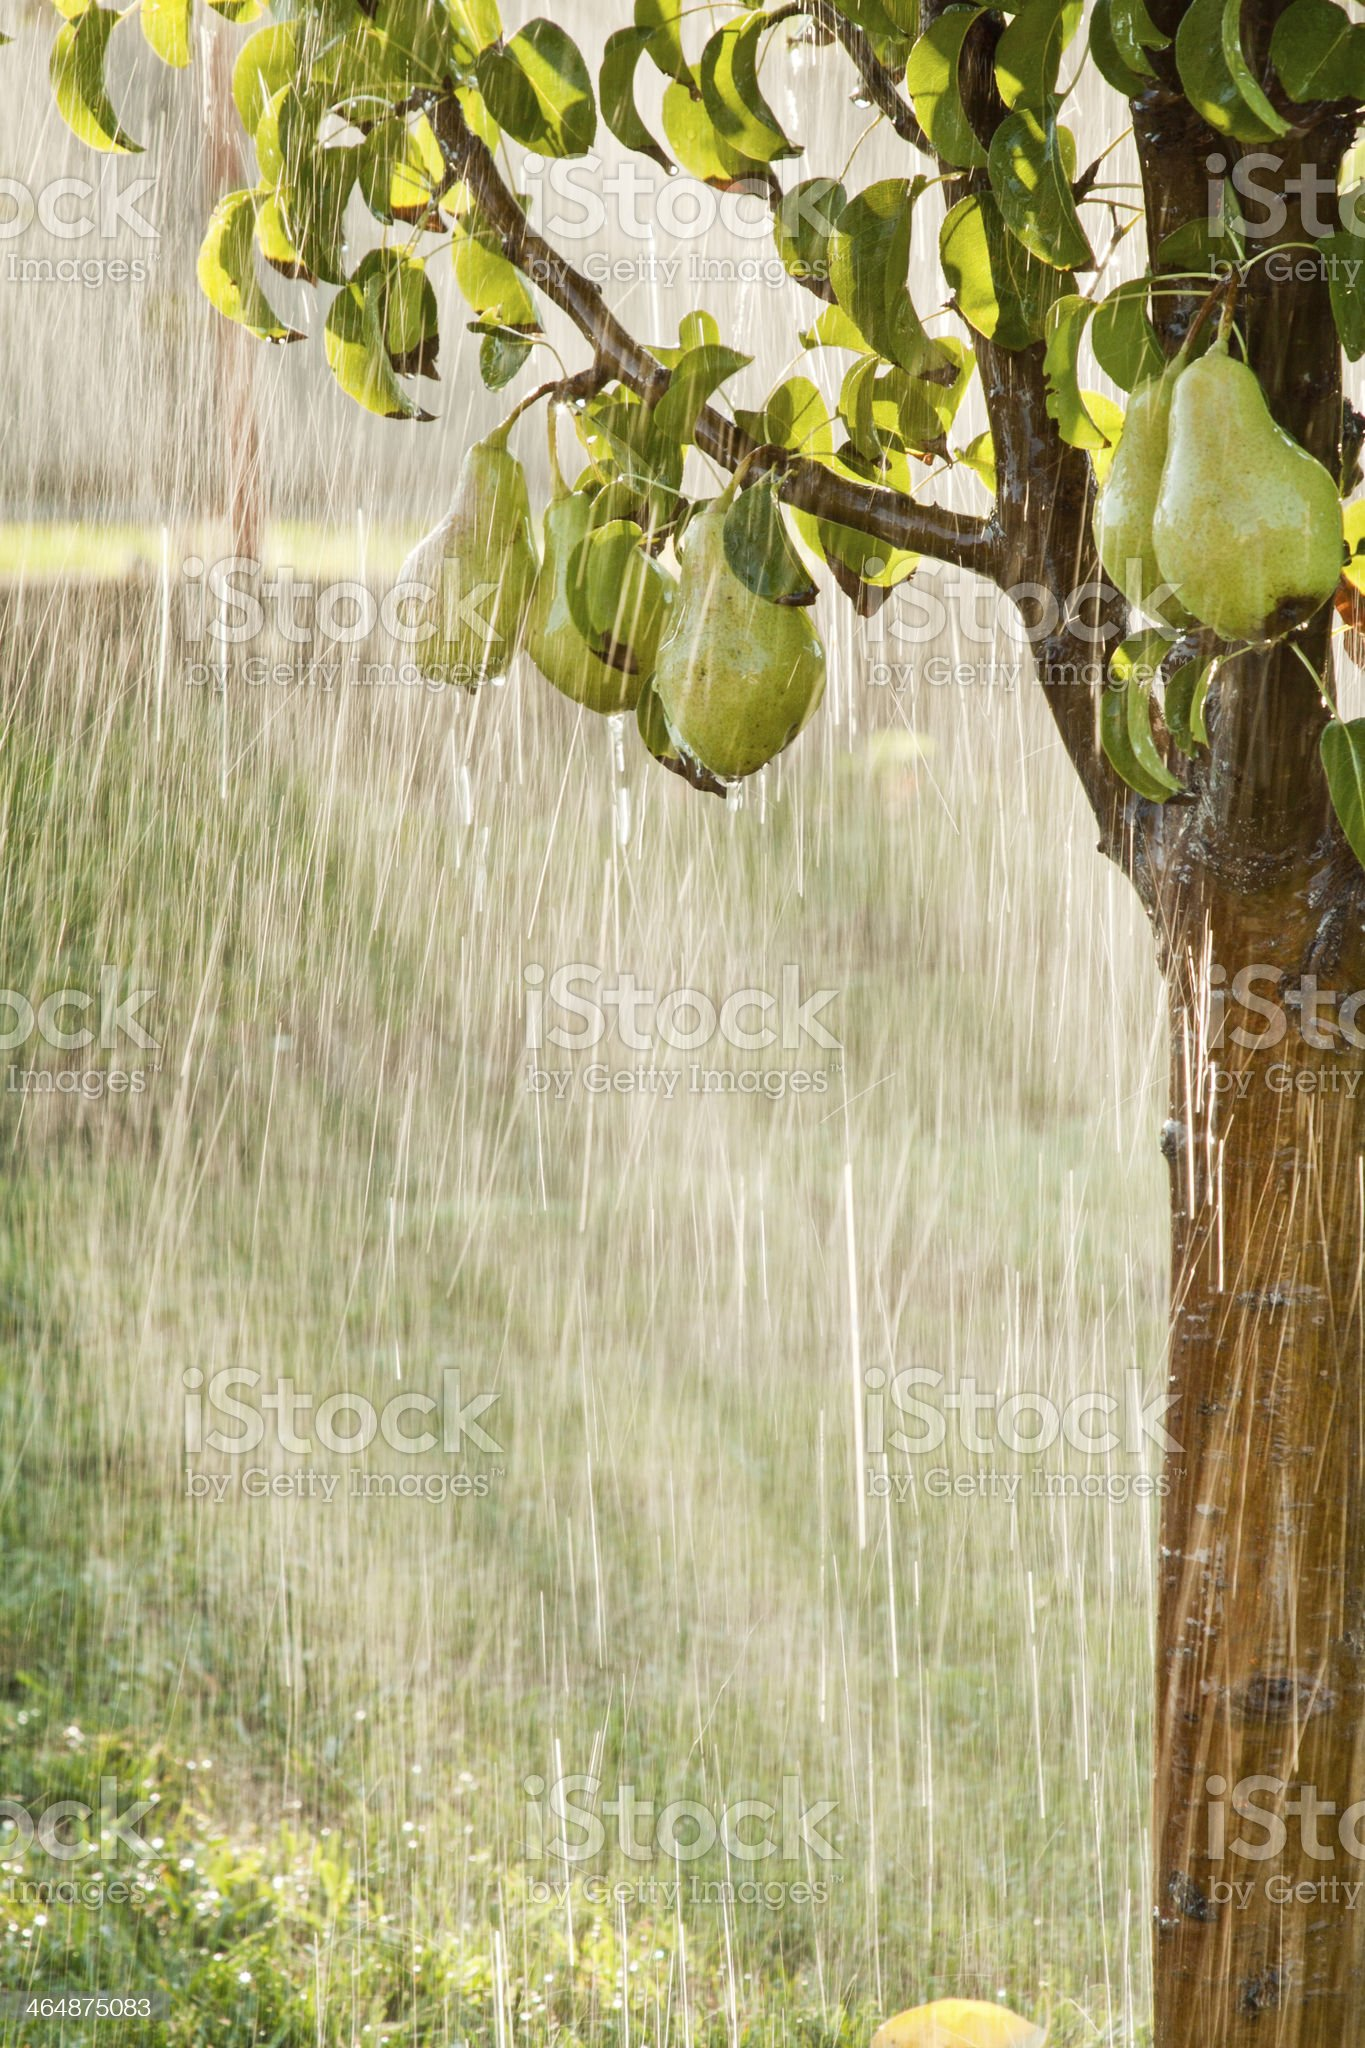 Pears on a tree branch closeup in orchard. Summer rain royalty-free stock photo